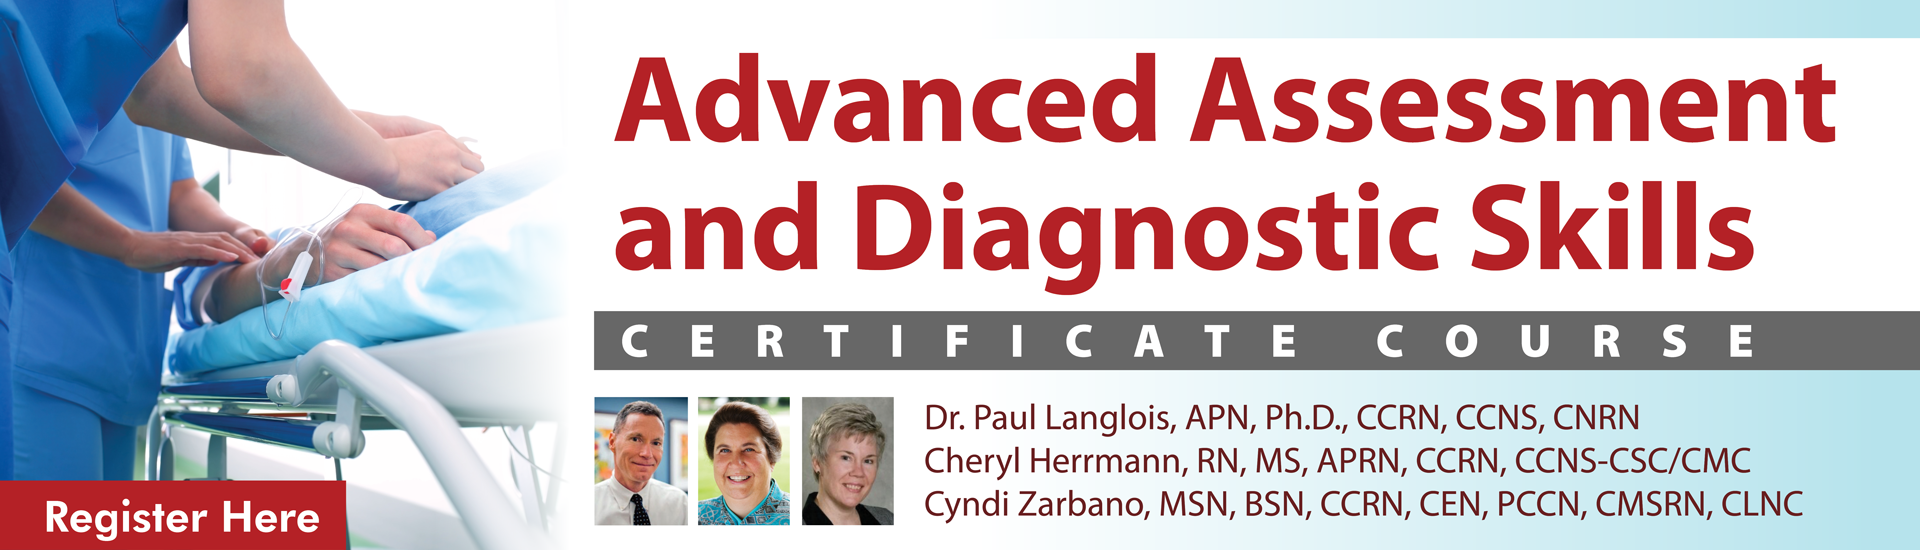 Advanced Assessment & Diagnostic Skills Certificate Course